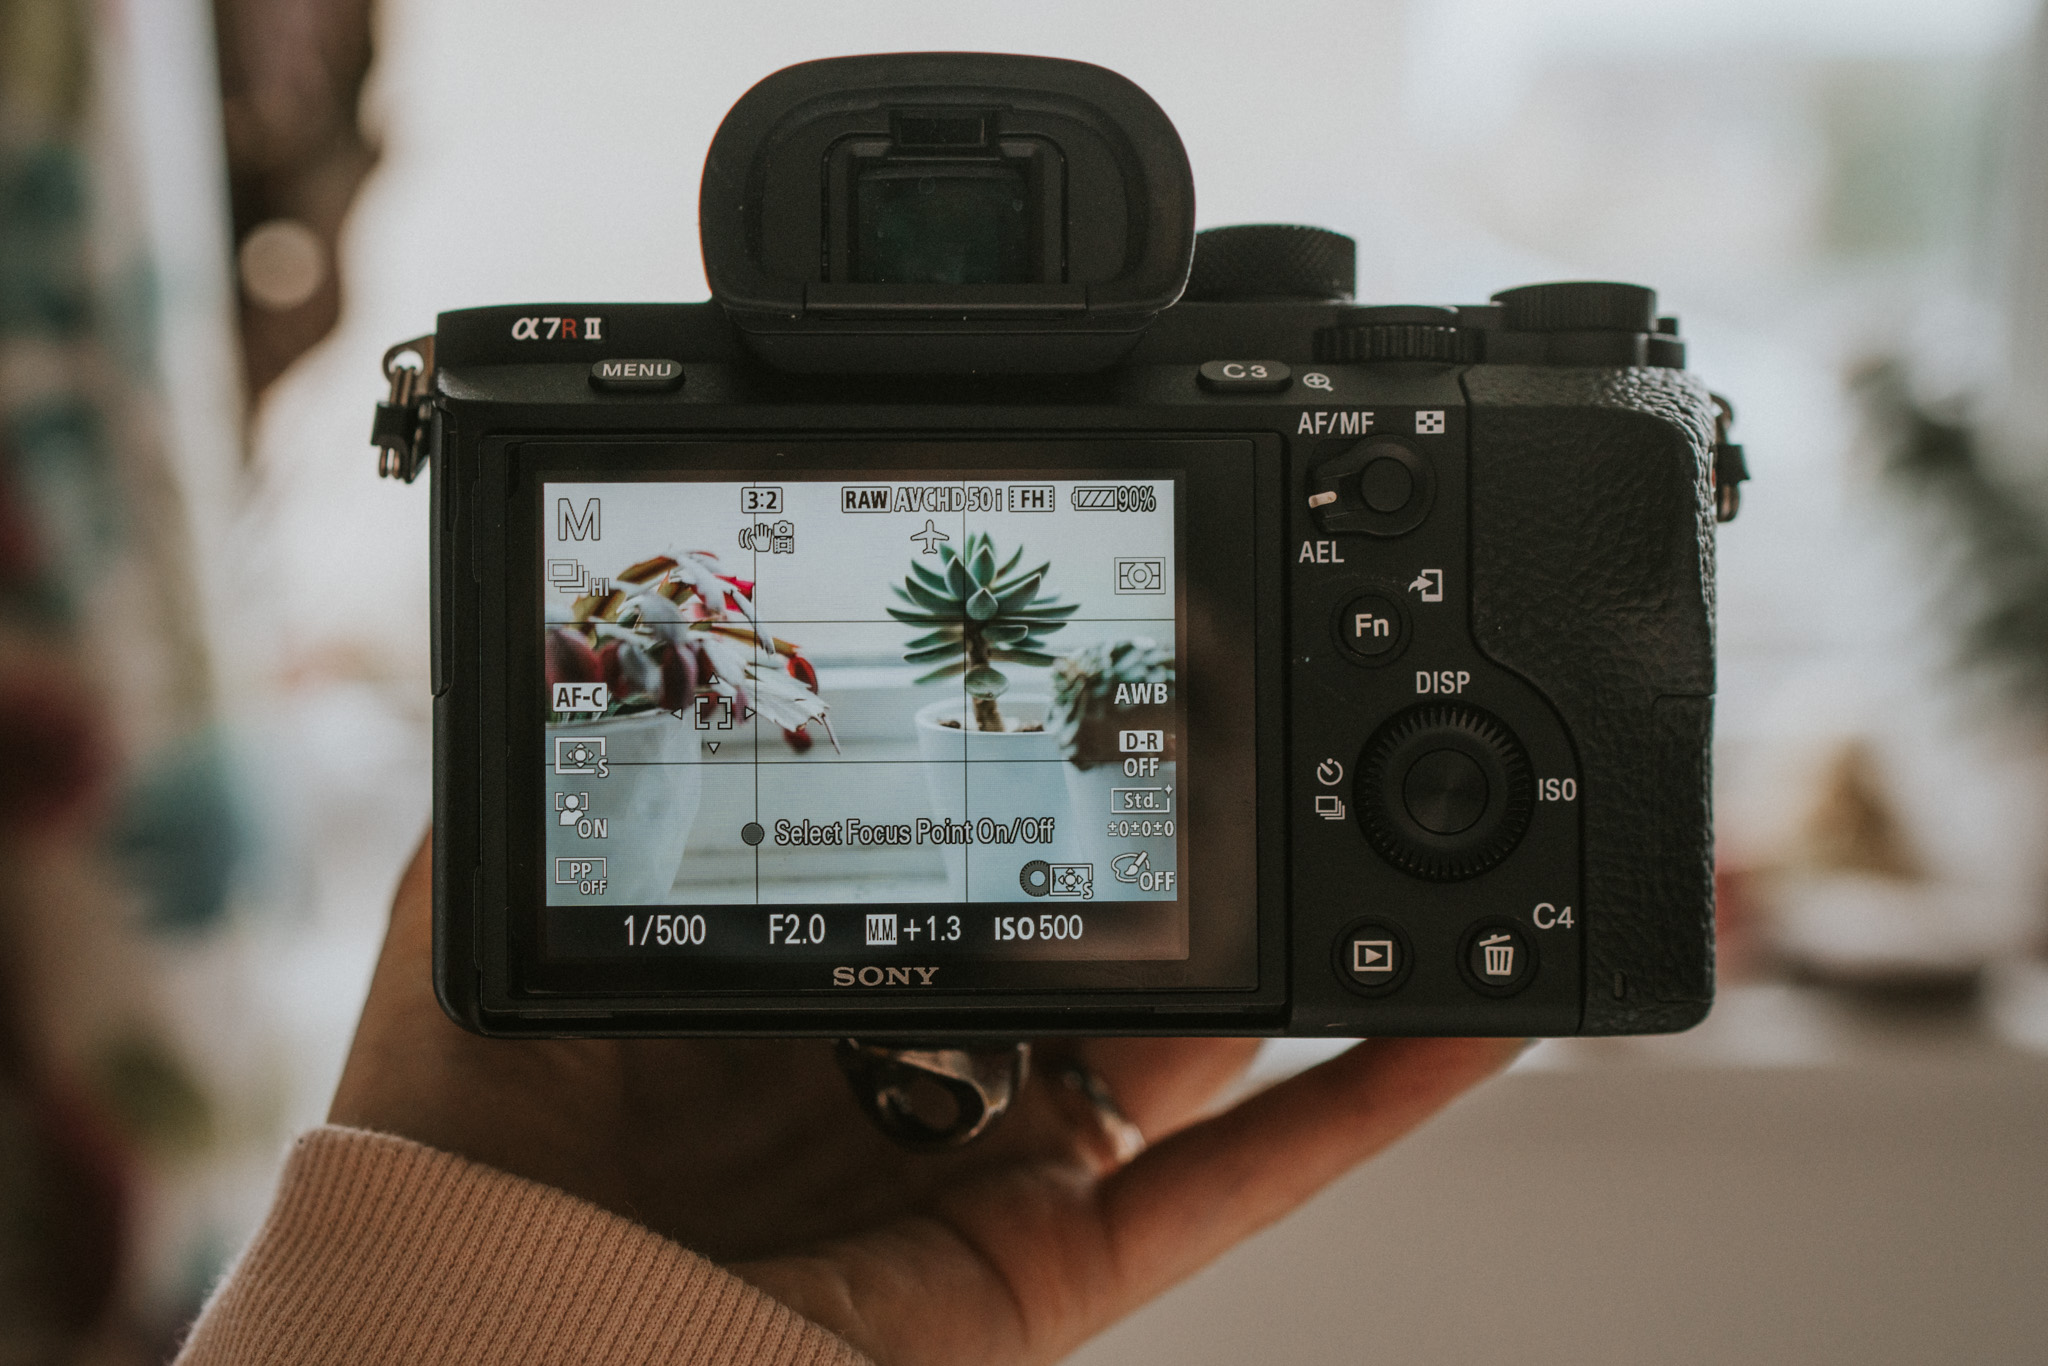 The electronic viewfinder (EVF)